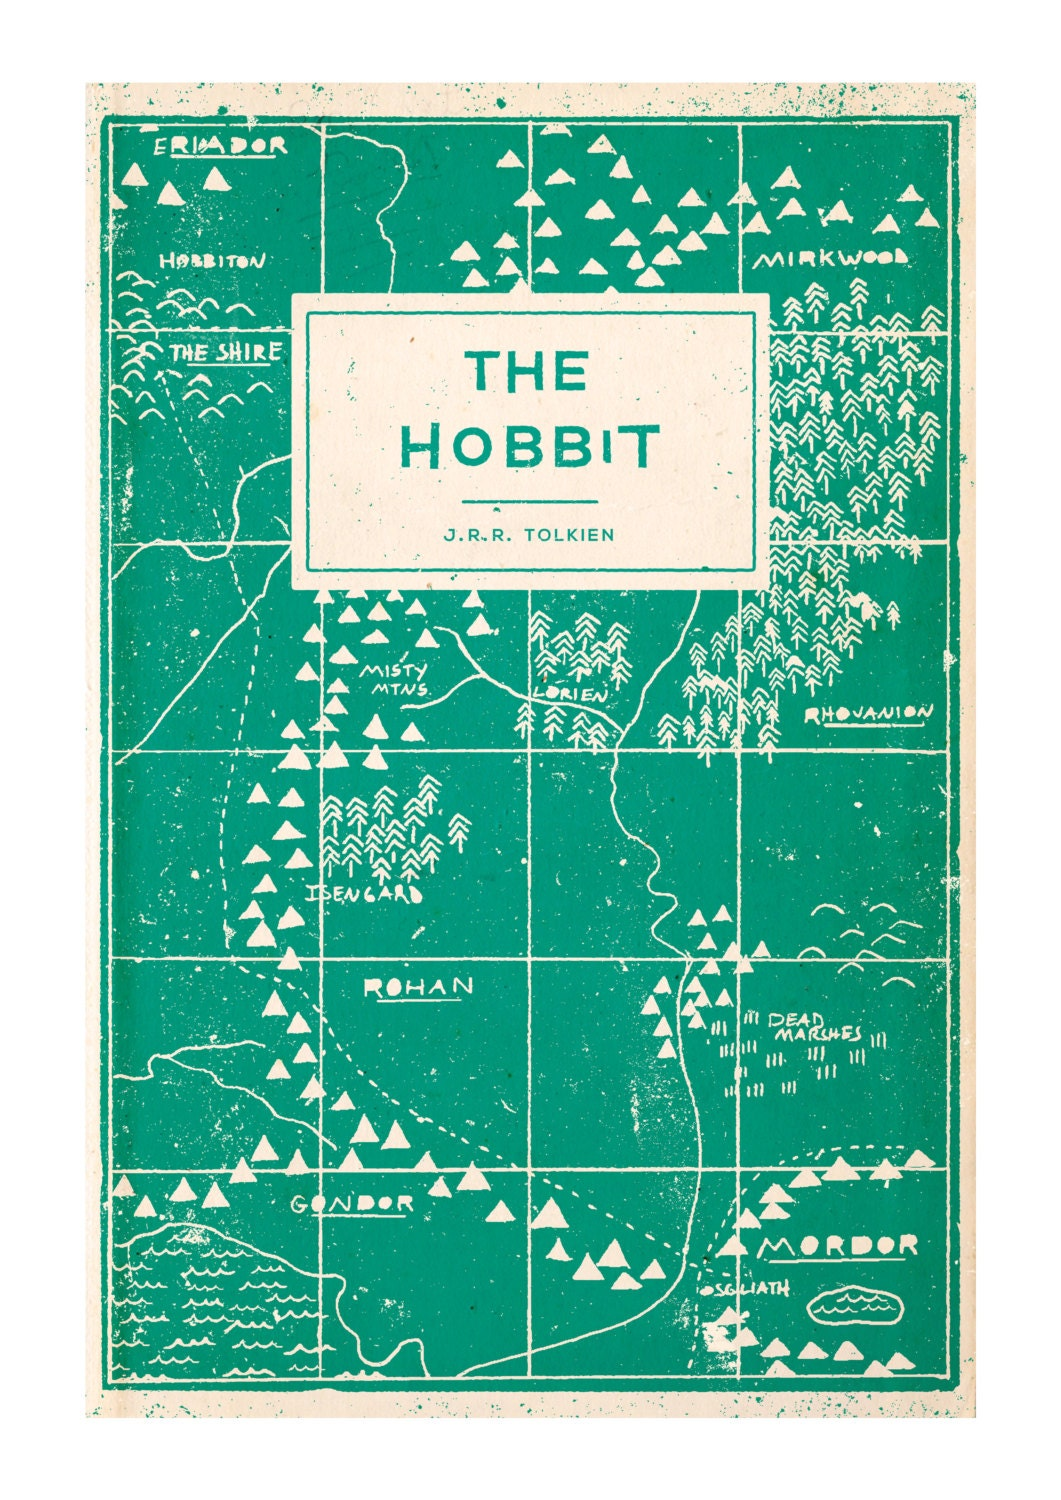 Book Cover Illustration Search : The hobbit book cover illustration art print a by buzzstudios